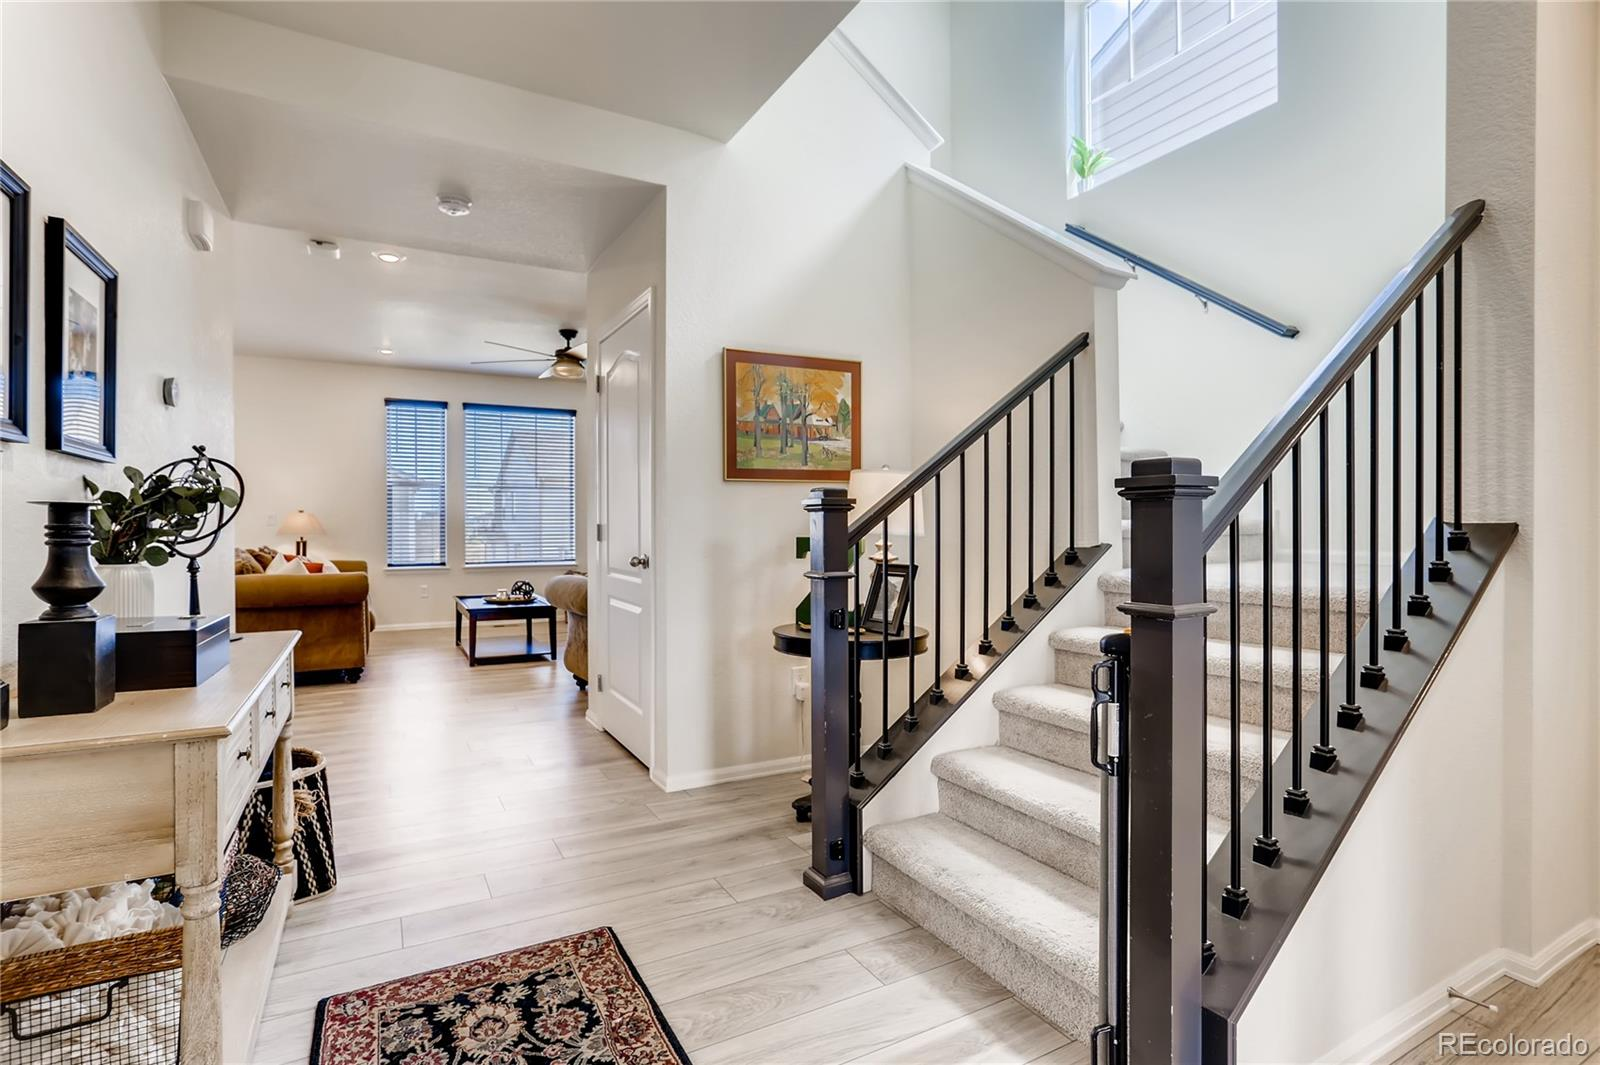 MLS# 2145354 - 23 - 26325 E Canal Place, Aurora, CO 80018